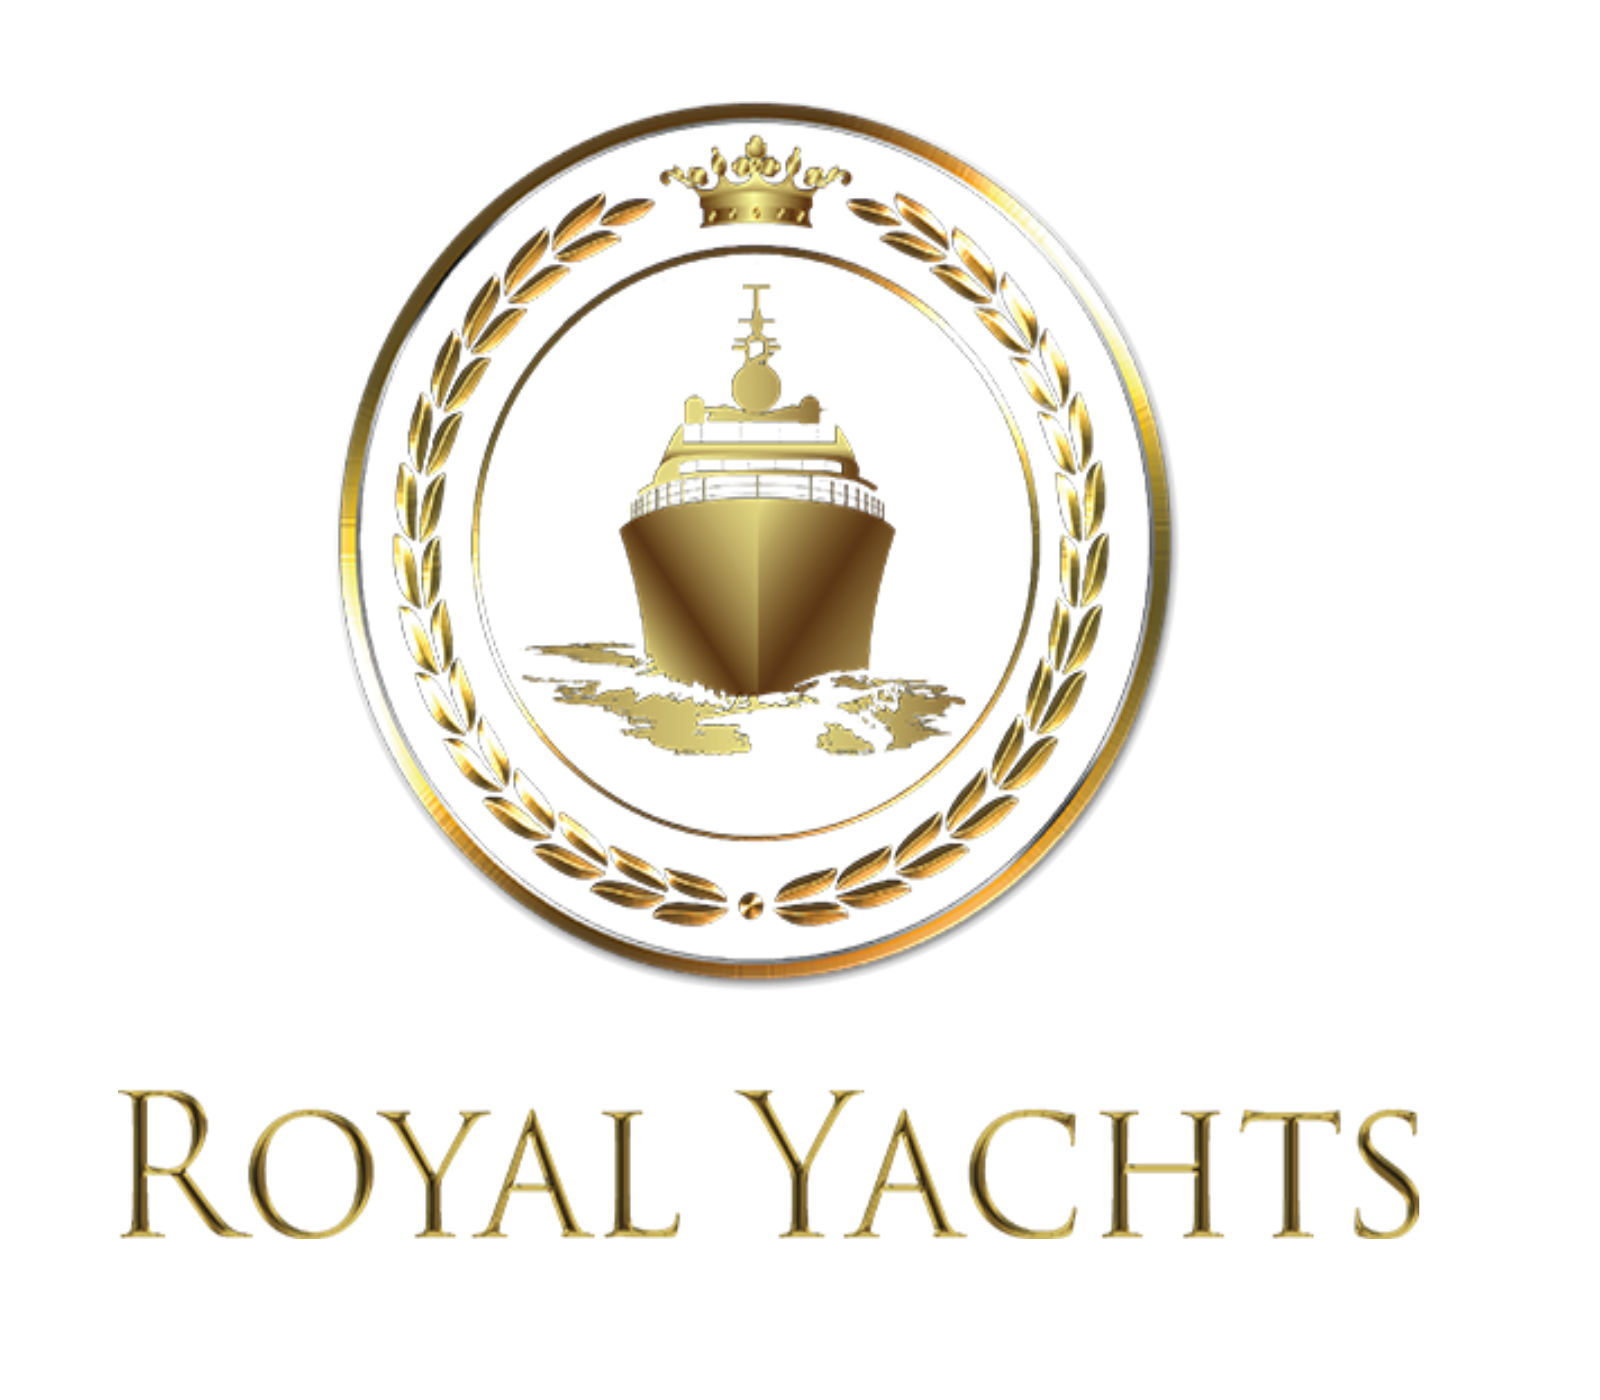 Royal Yachts